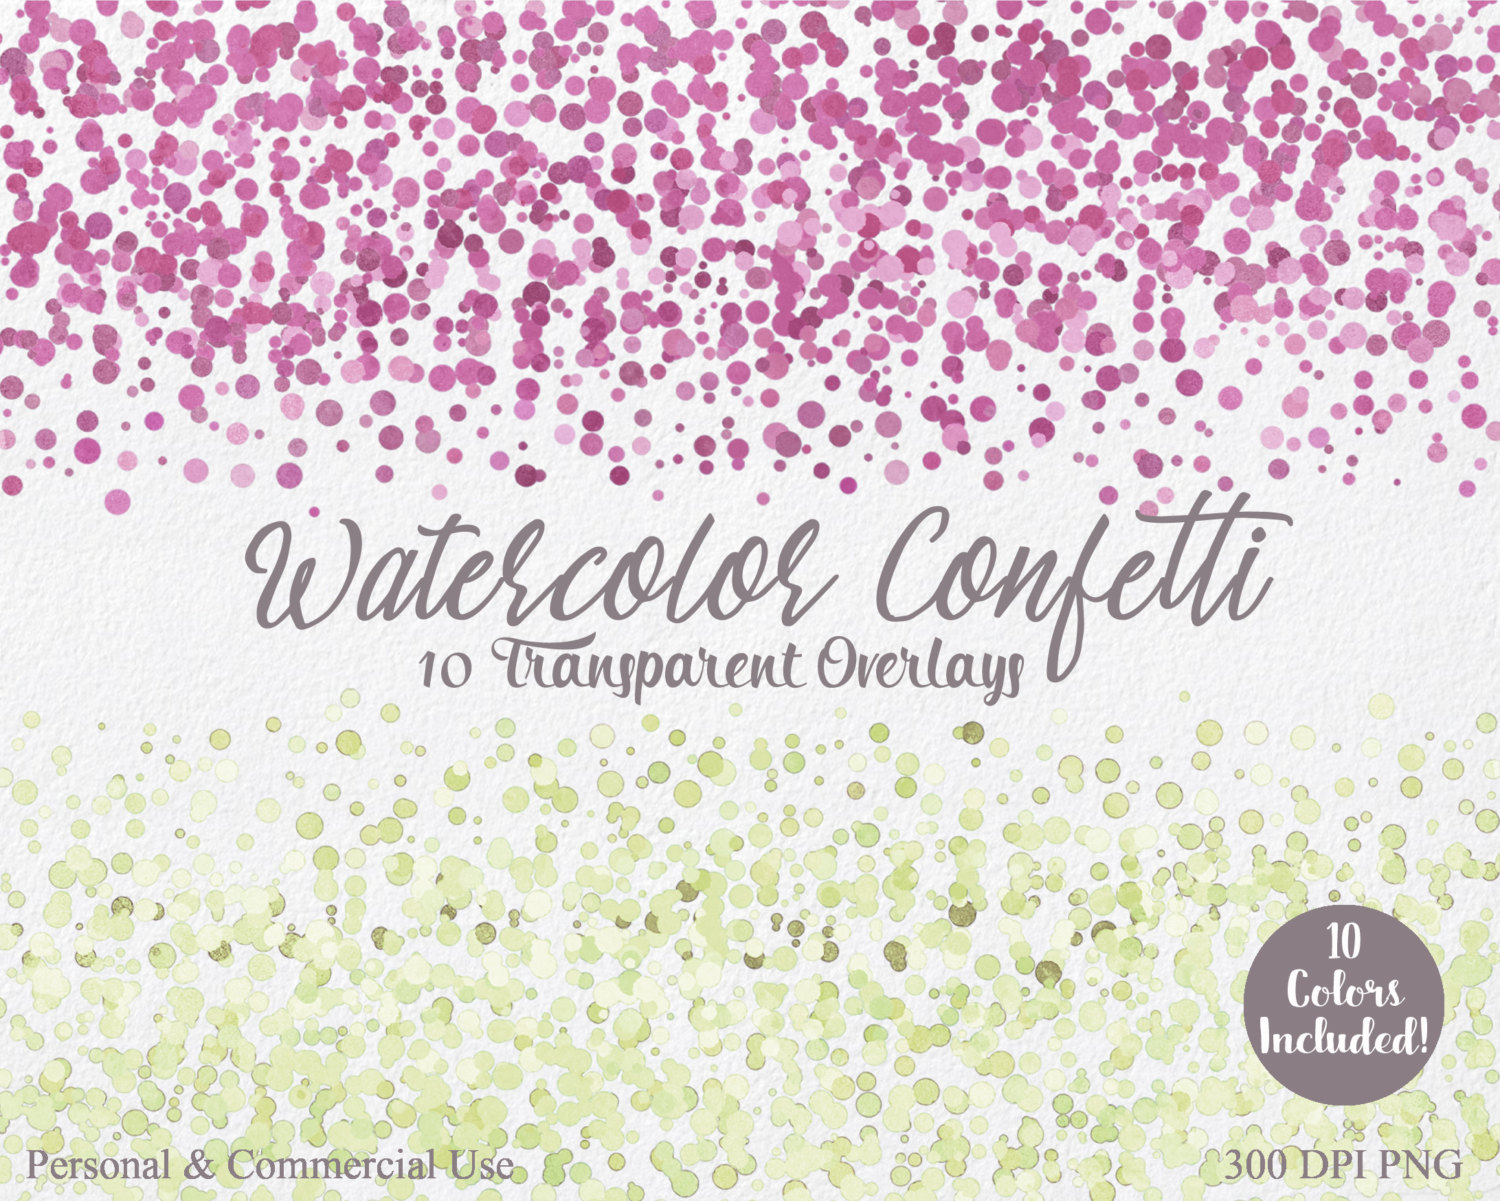 Plum clipart border BORDER Lilac CONFETTI Use Commercial